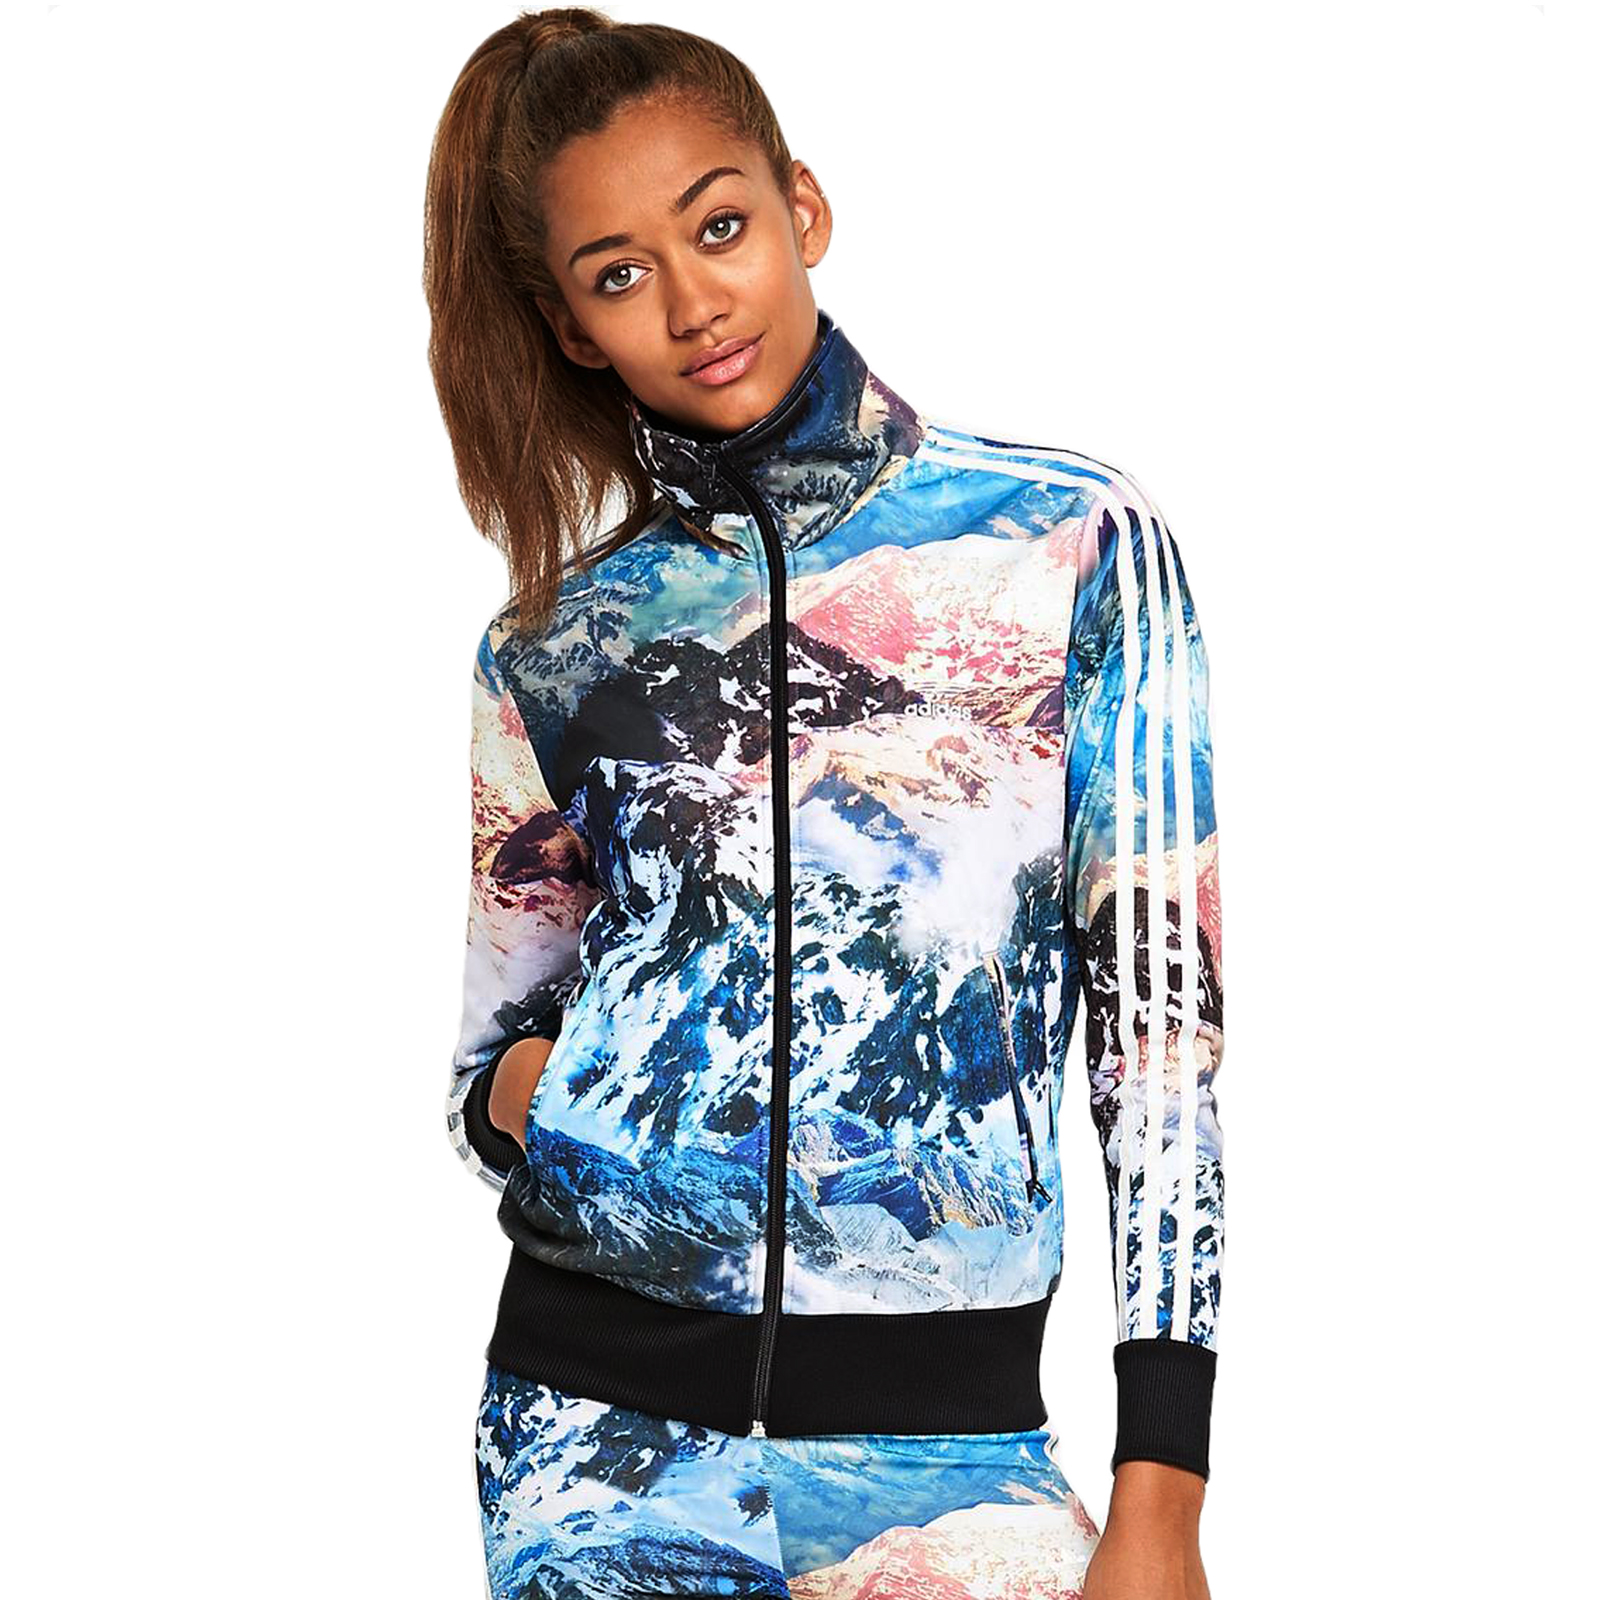 Flower adidas tracksuit cheap >off63% più grande catalogo sconti